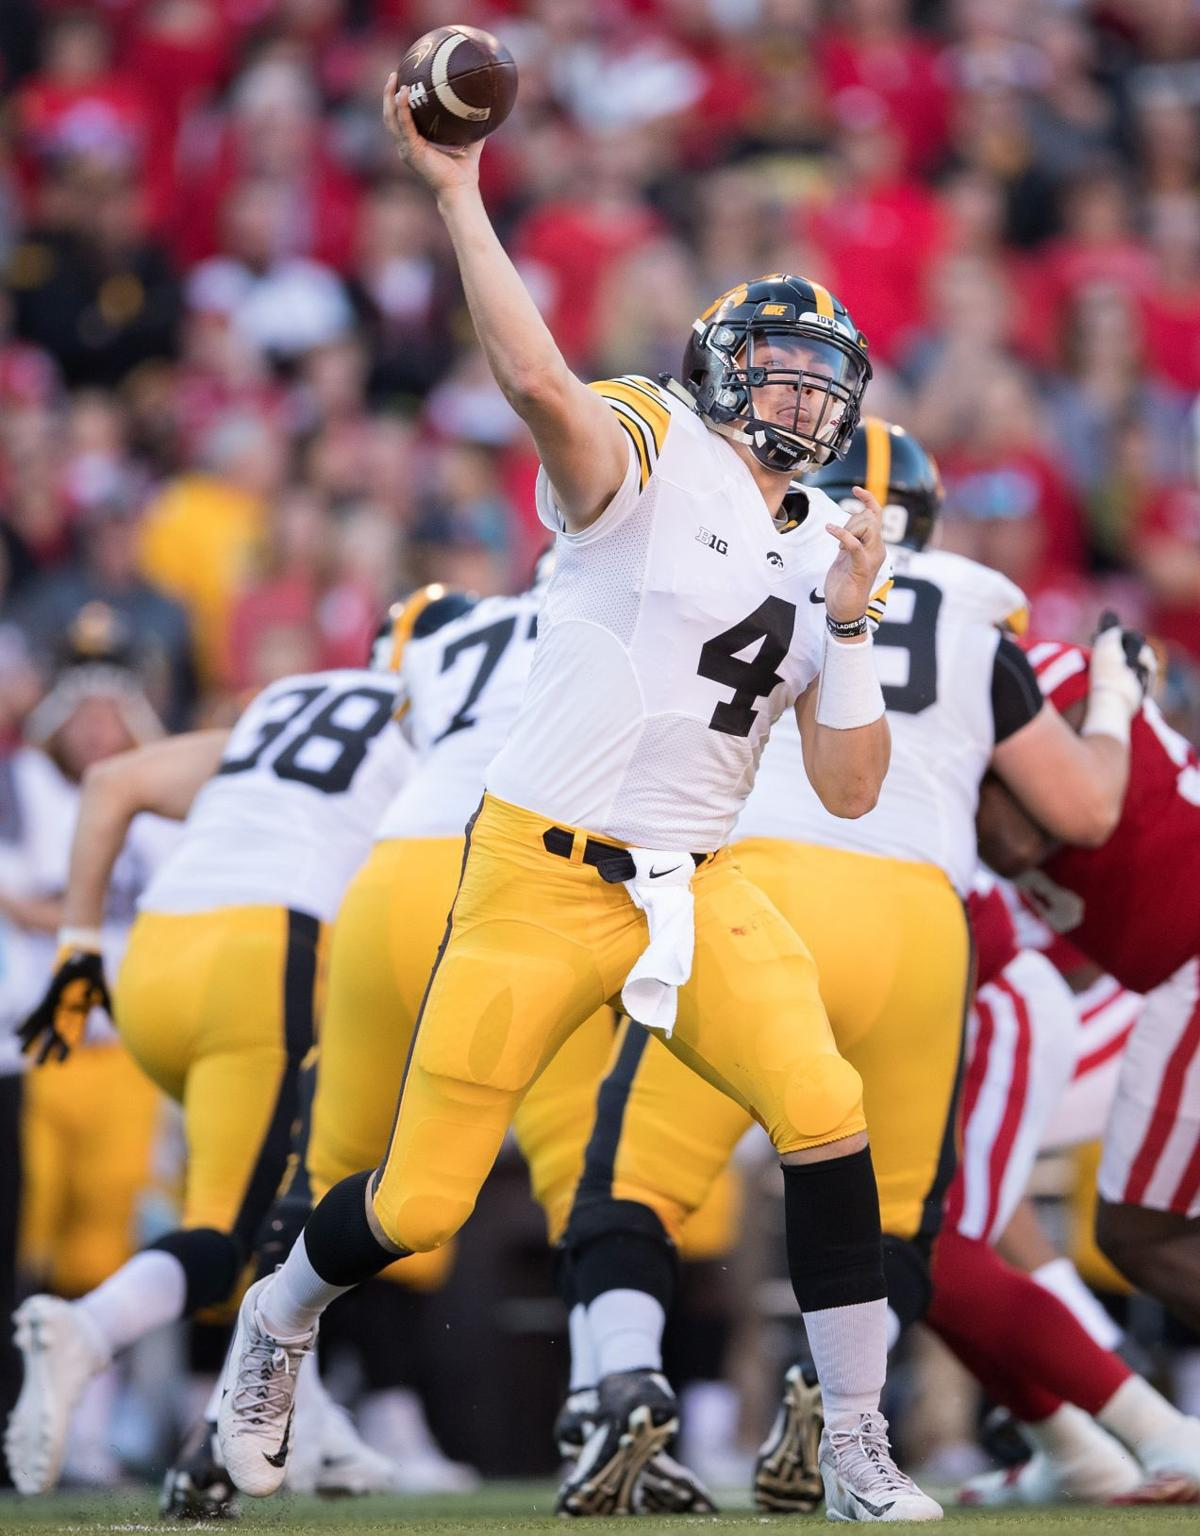 Barfknecht: Iowa quarterback Nate Stanley seeks more consistency in second year as a starter